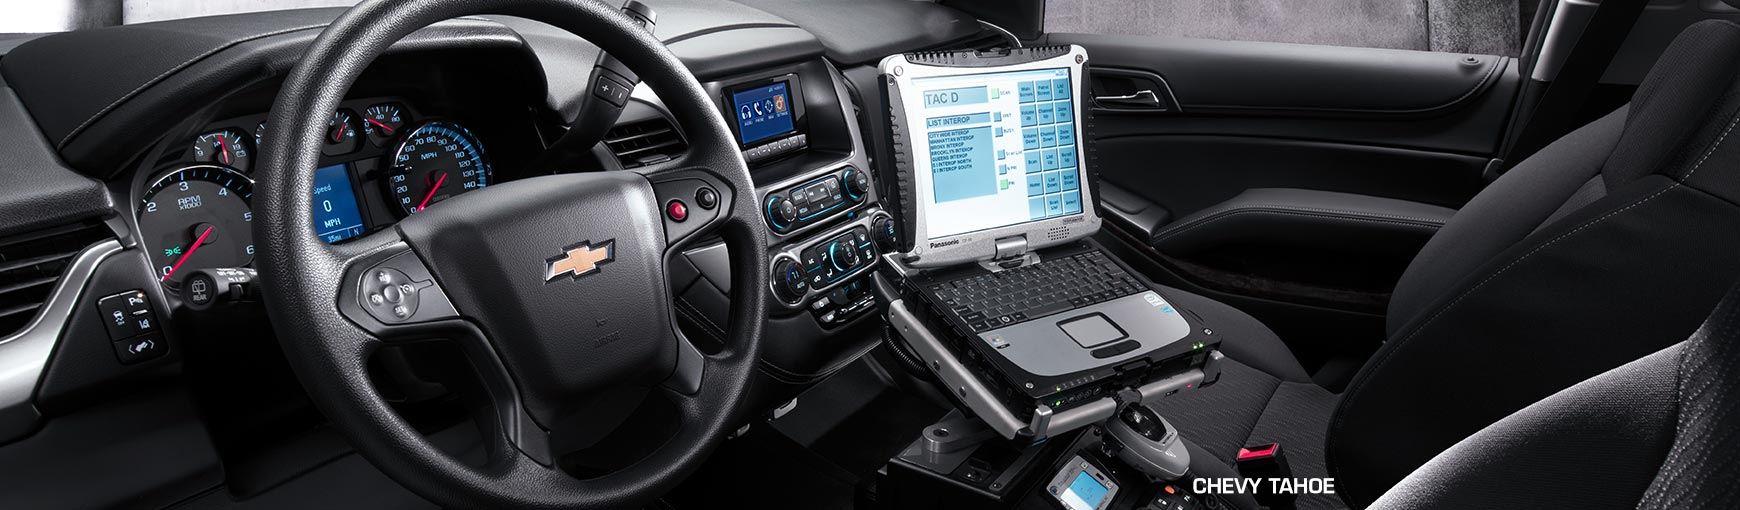 Interior of the 2017 Chevrolet Tahoe Police Pursuit SUV.